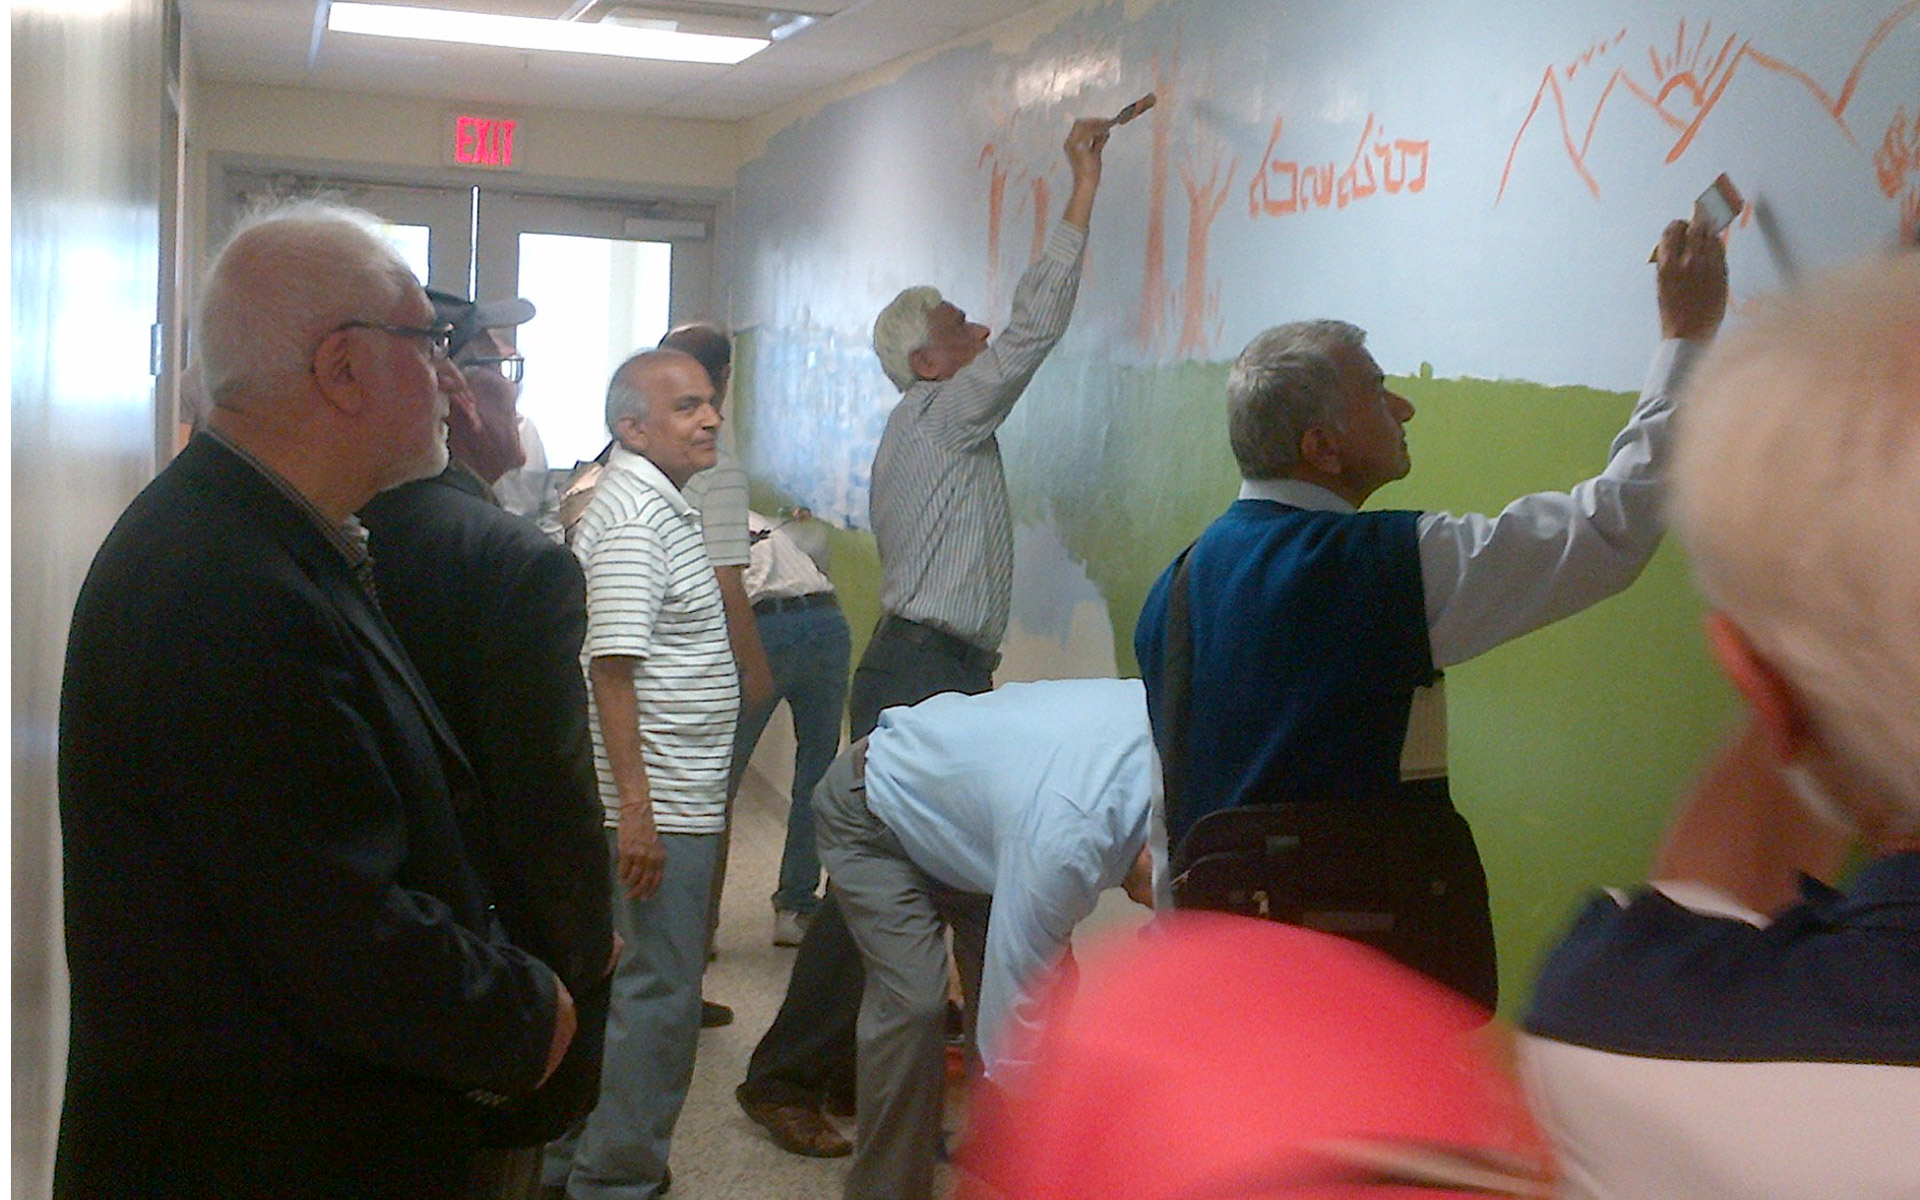 Seniors helping to paint a mural